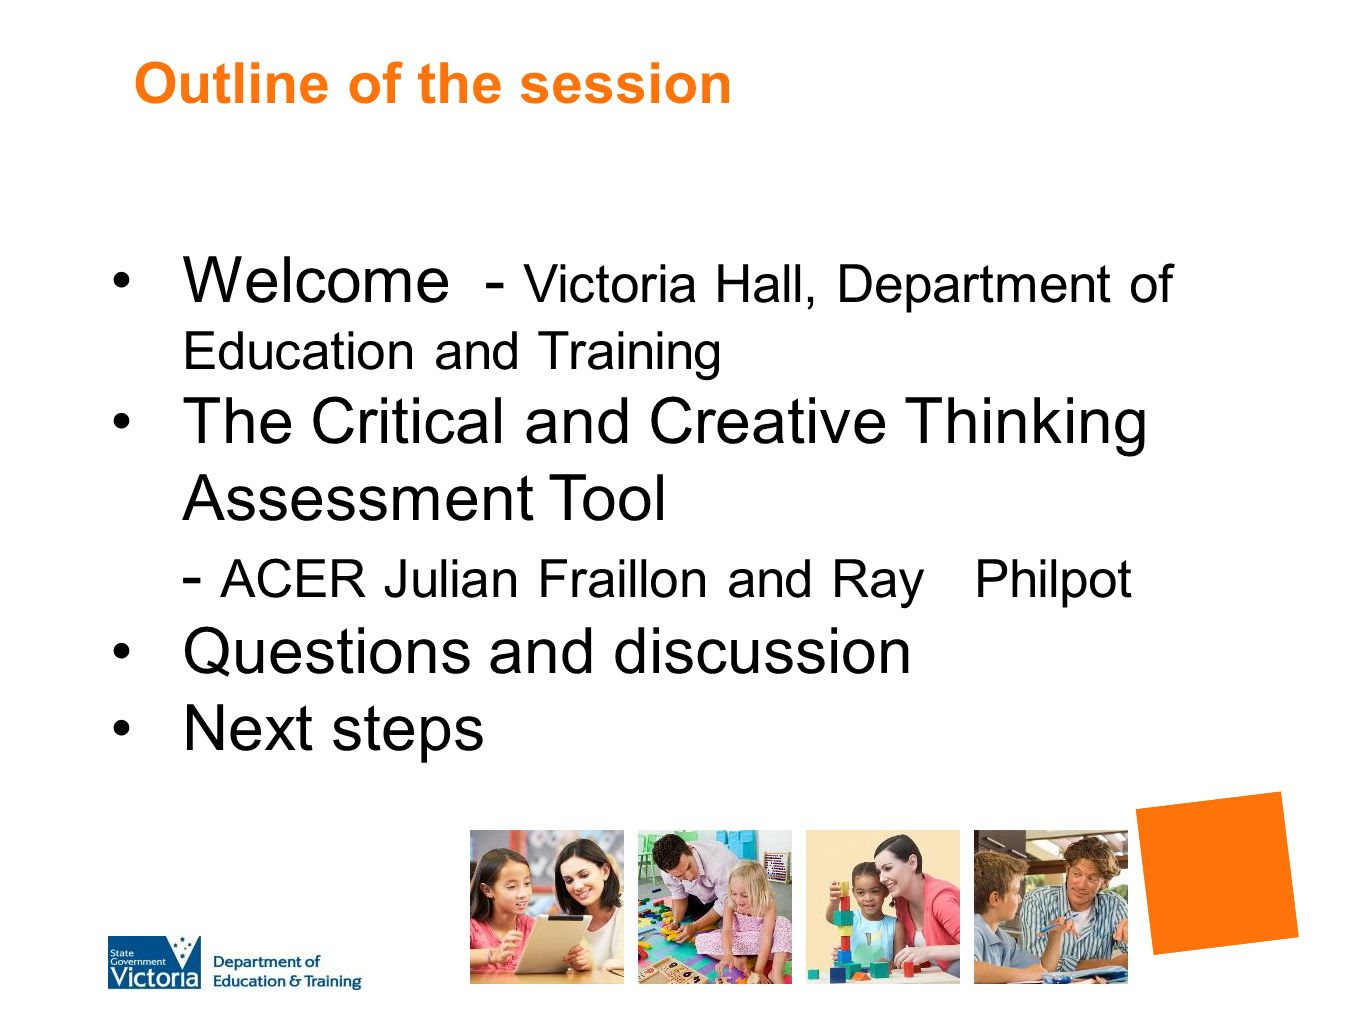 Outline of the session Welcome - Victoria Hall, Department of Education and Training The Critical and Creative Thinking Assessment Tool - ACER Julian